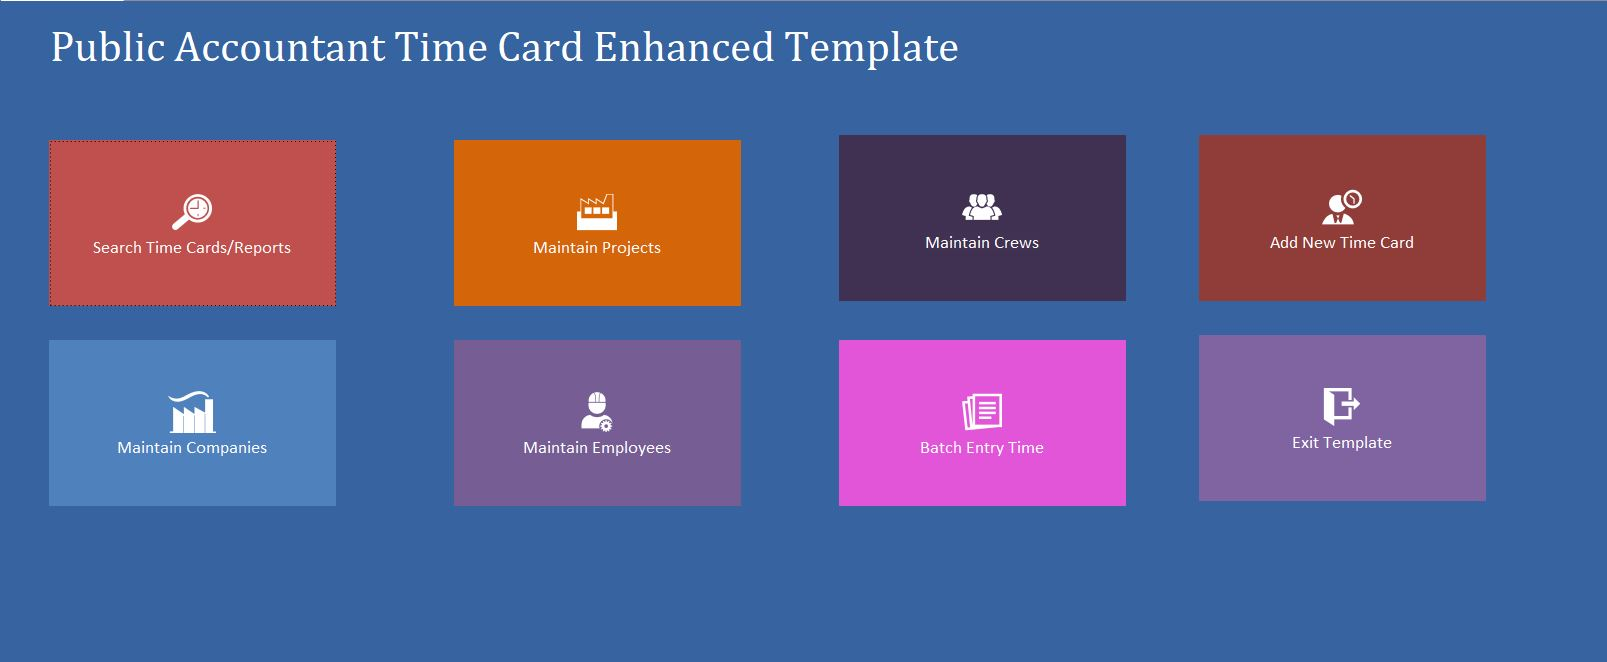 Enhanced Public Accountant Time Card Template | Time Card Database